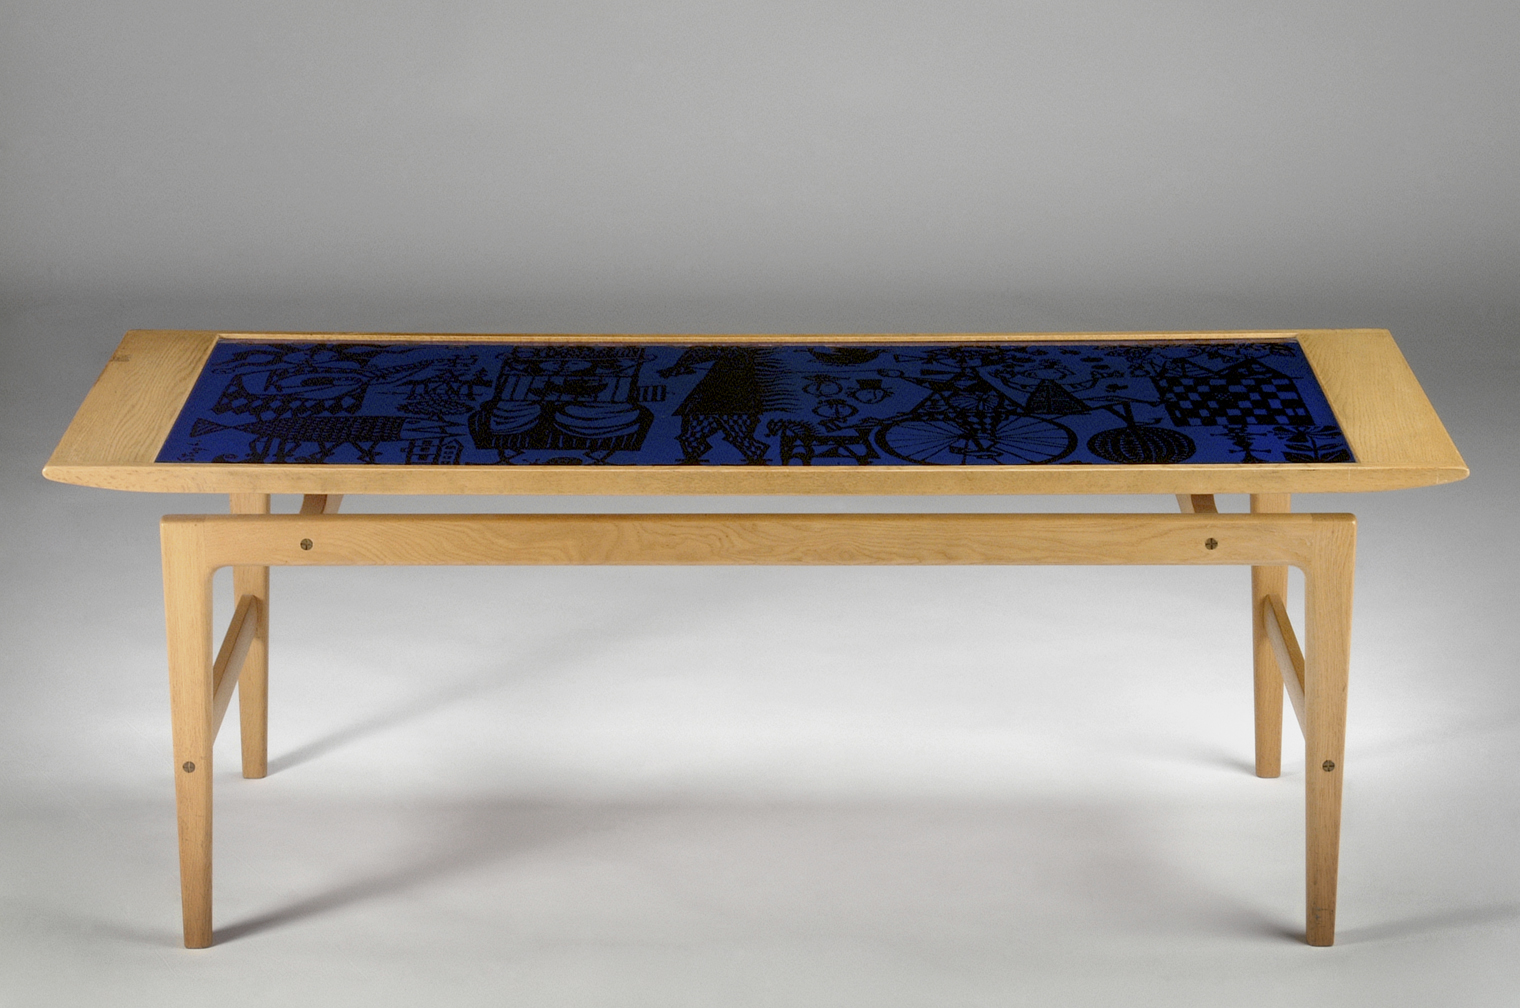 Stig Lindberg Table